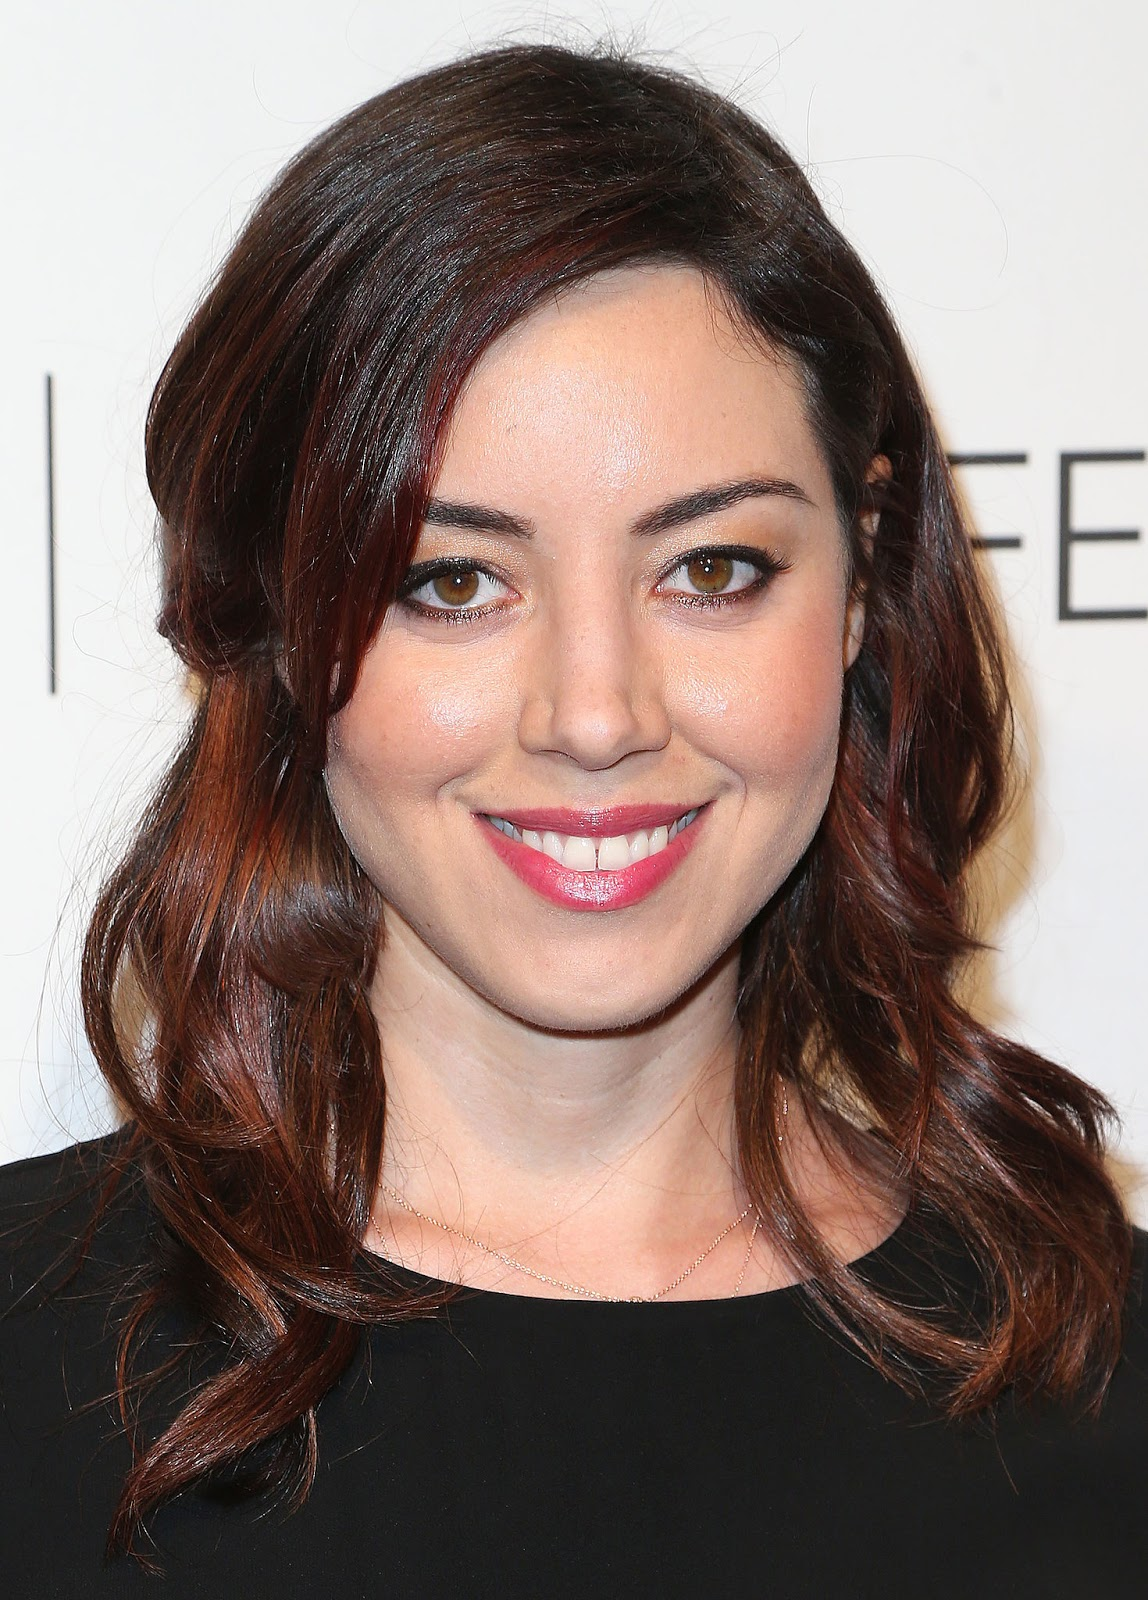 Aubrey plaza the to do list 2014 - 1 5